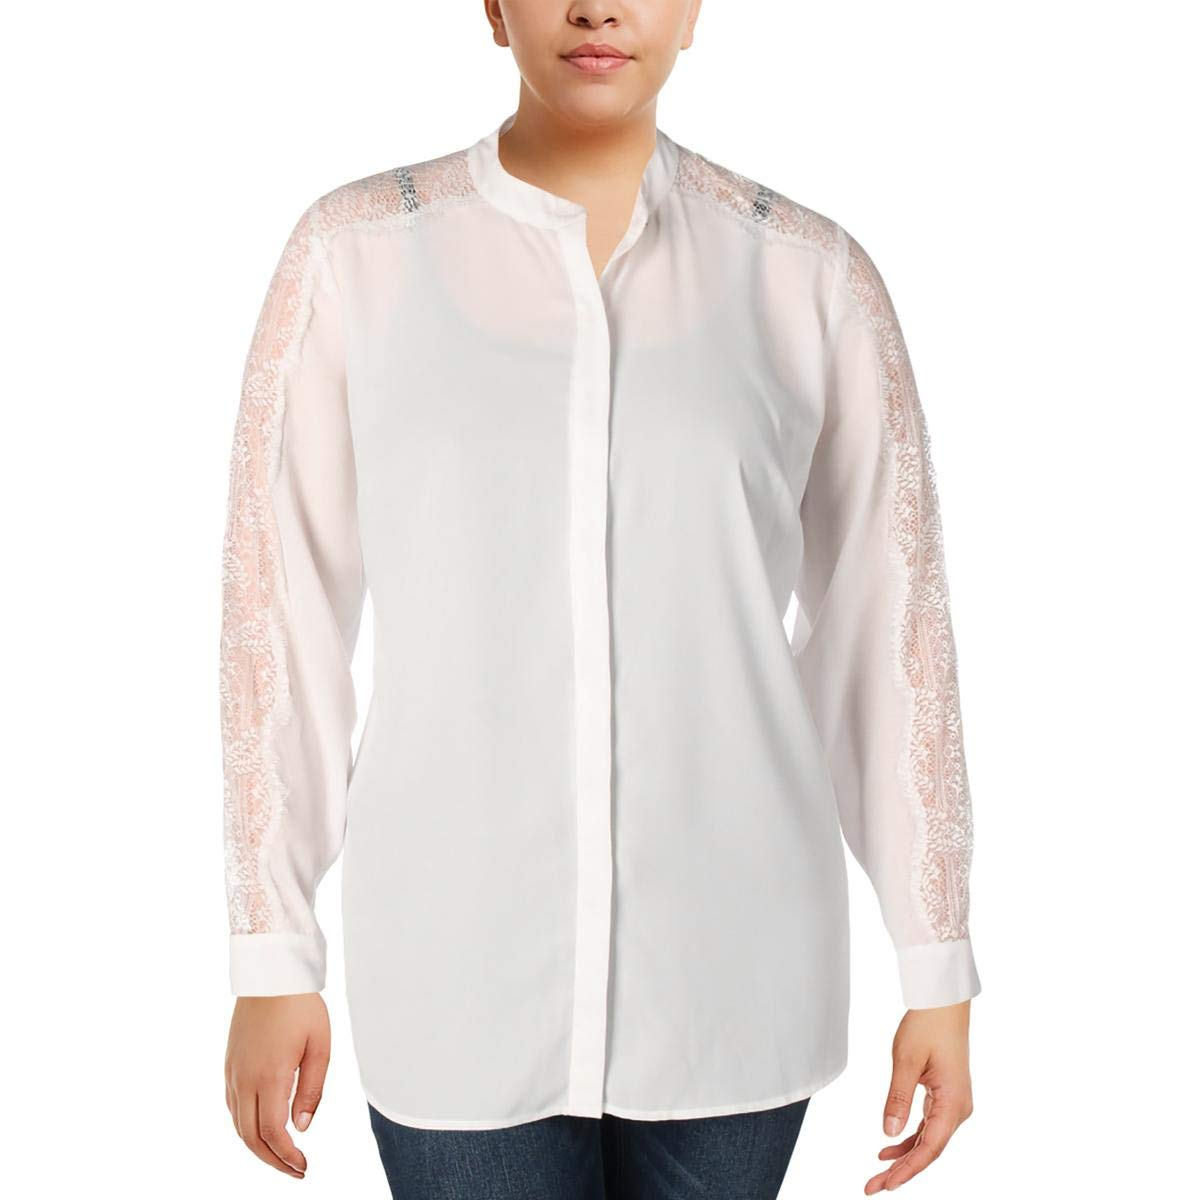 b528aec6 Amazon.com: Vince Camuto Womens Plus Sheer Lace Inset Button-Down Top Ivory  1X: Clothing